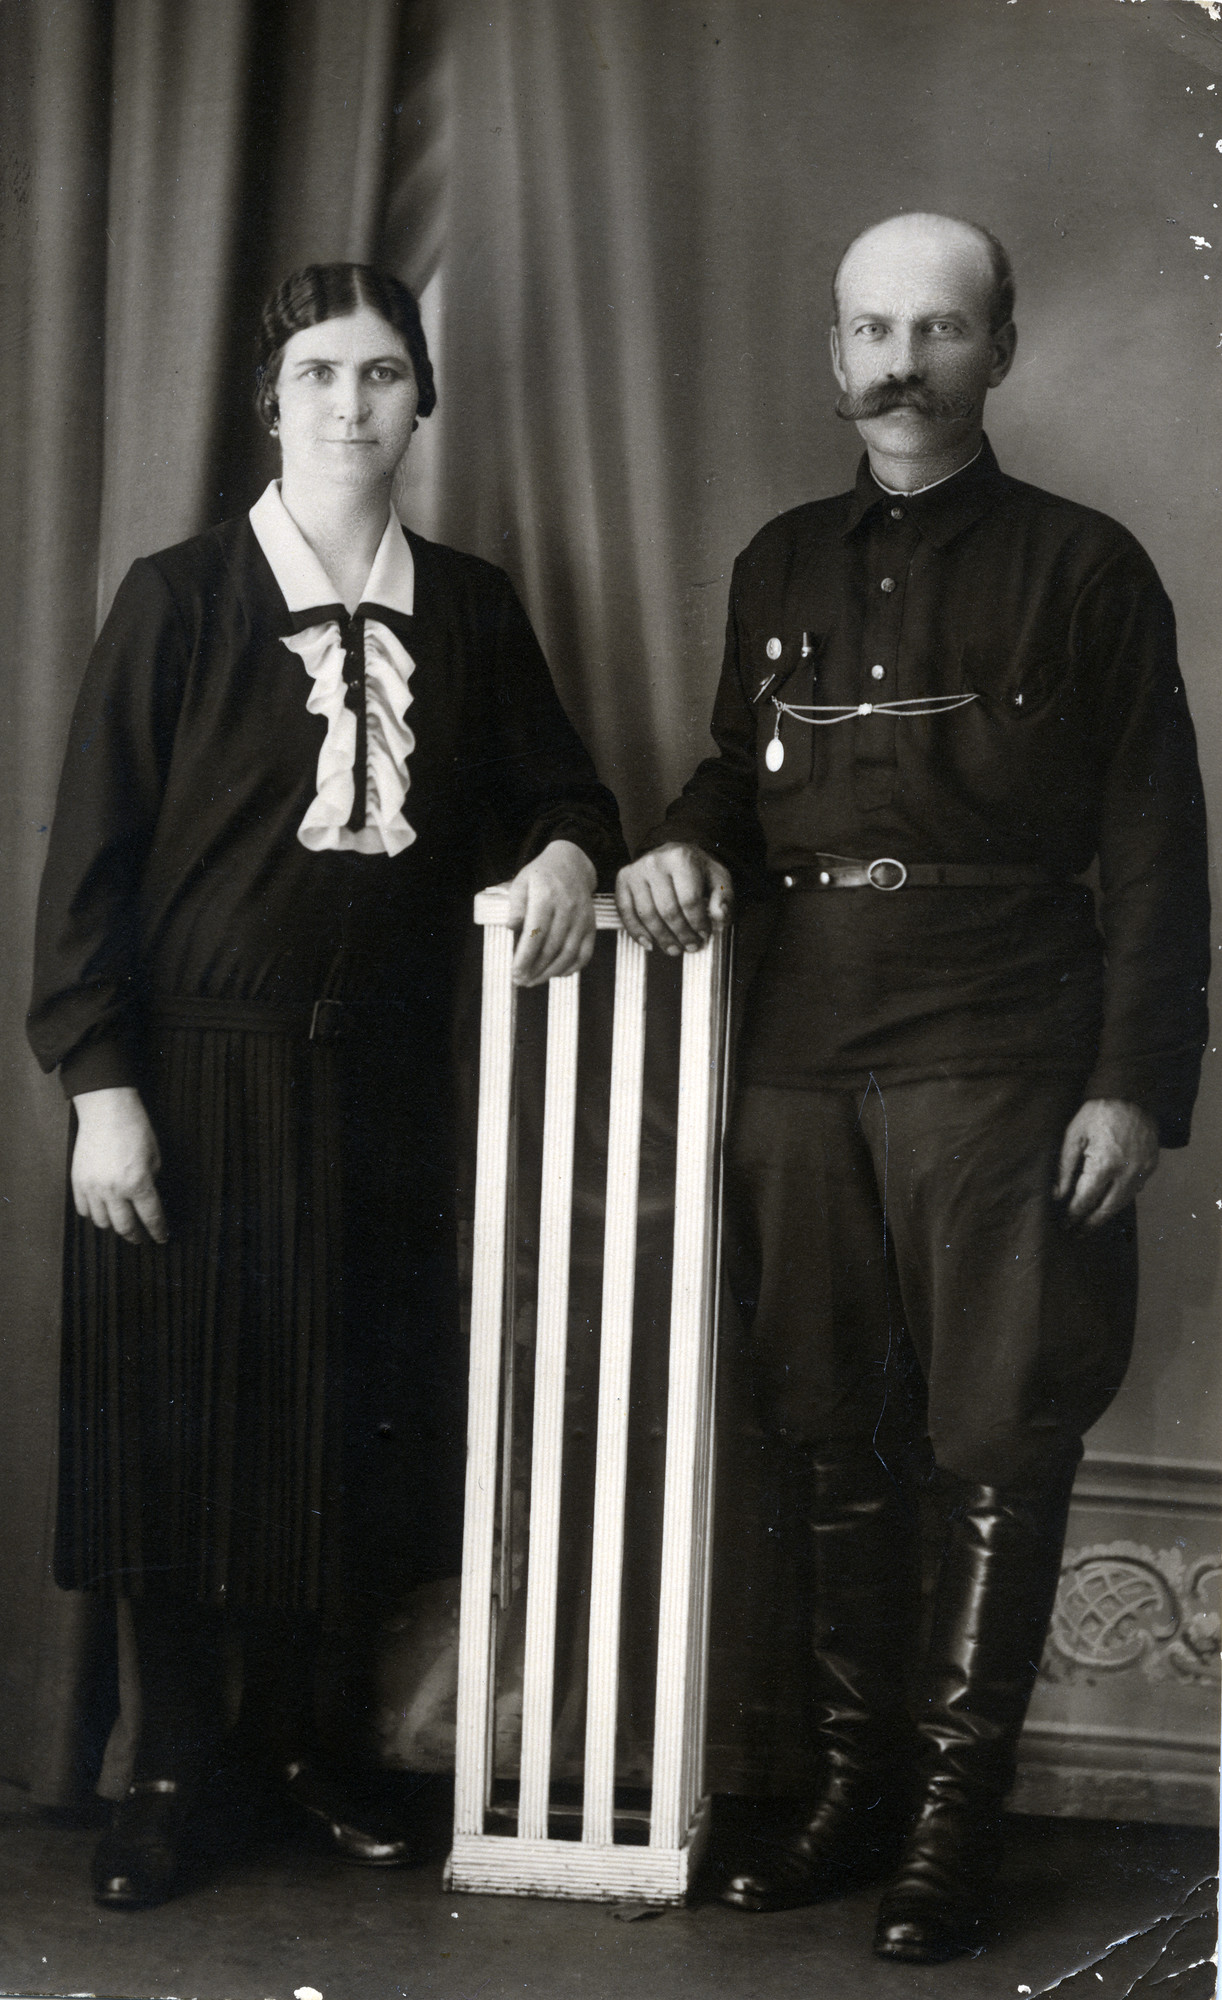 Jakob Kartaszew with his wife Anna.   He was the Polish caretaker of the cemetery where the Miedzyrzecki family hid in 1943.  They were later recognized as Righteous Among the Nations.